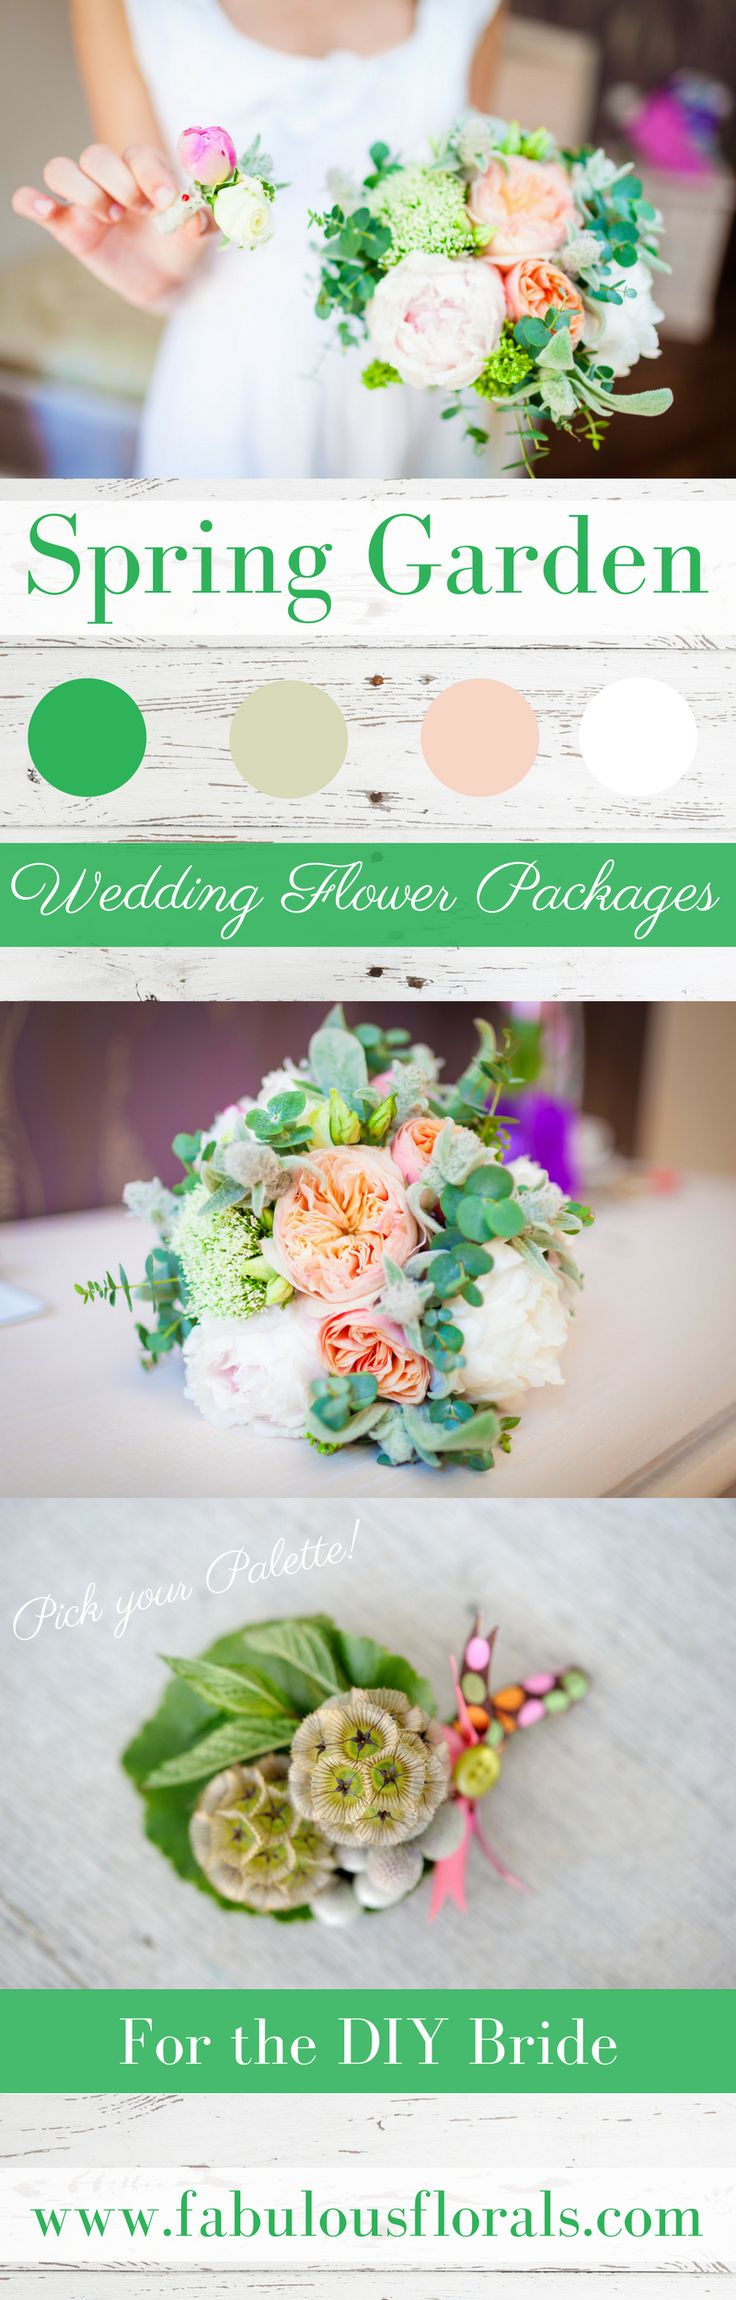 Wedding Trends! Spring Wedding Flowers. DIY Wedding Flower Packages! Buy Easy Complete DIY bouquet, Boutonniere & Centerpiece Flower packages online! How to make a wedding bouquet DIY wedding bouquet tutorials and instructions. #weddingflowerpackages #weddingflowers #weddingtrends